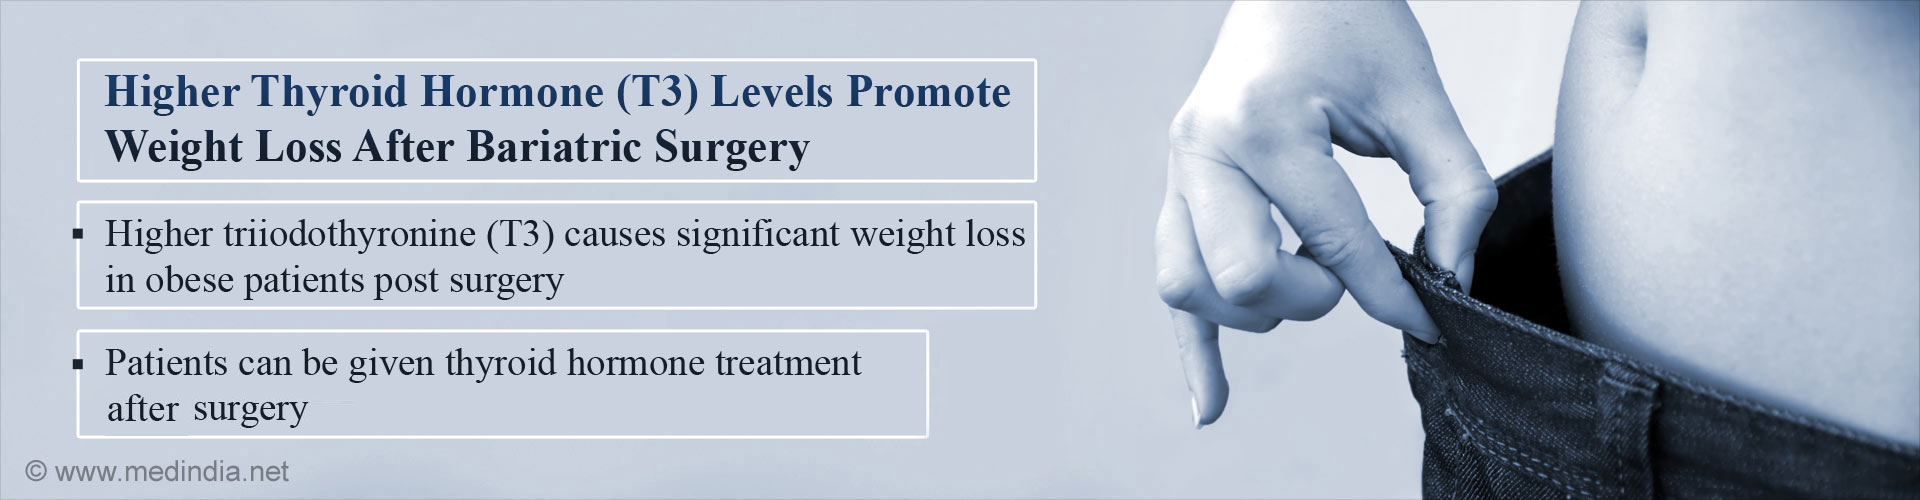 Higher Thyroid Hormone Levels (T3) Promote Weight Loss After Bariatric Surgery 